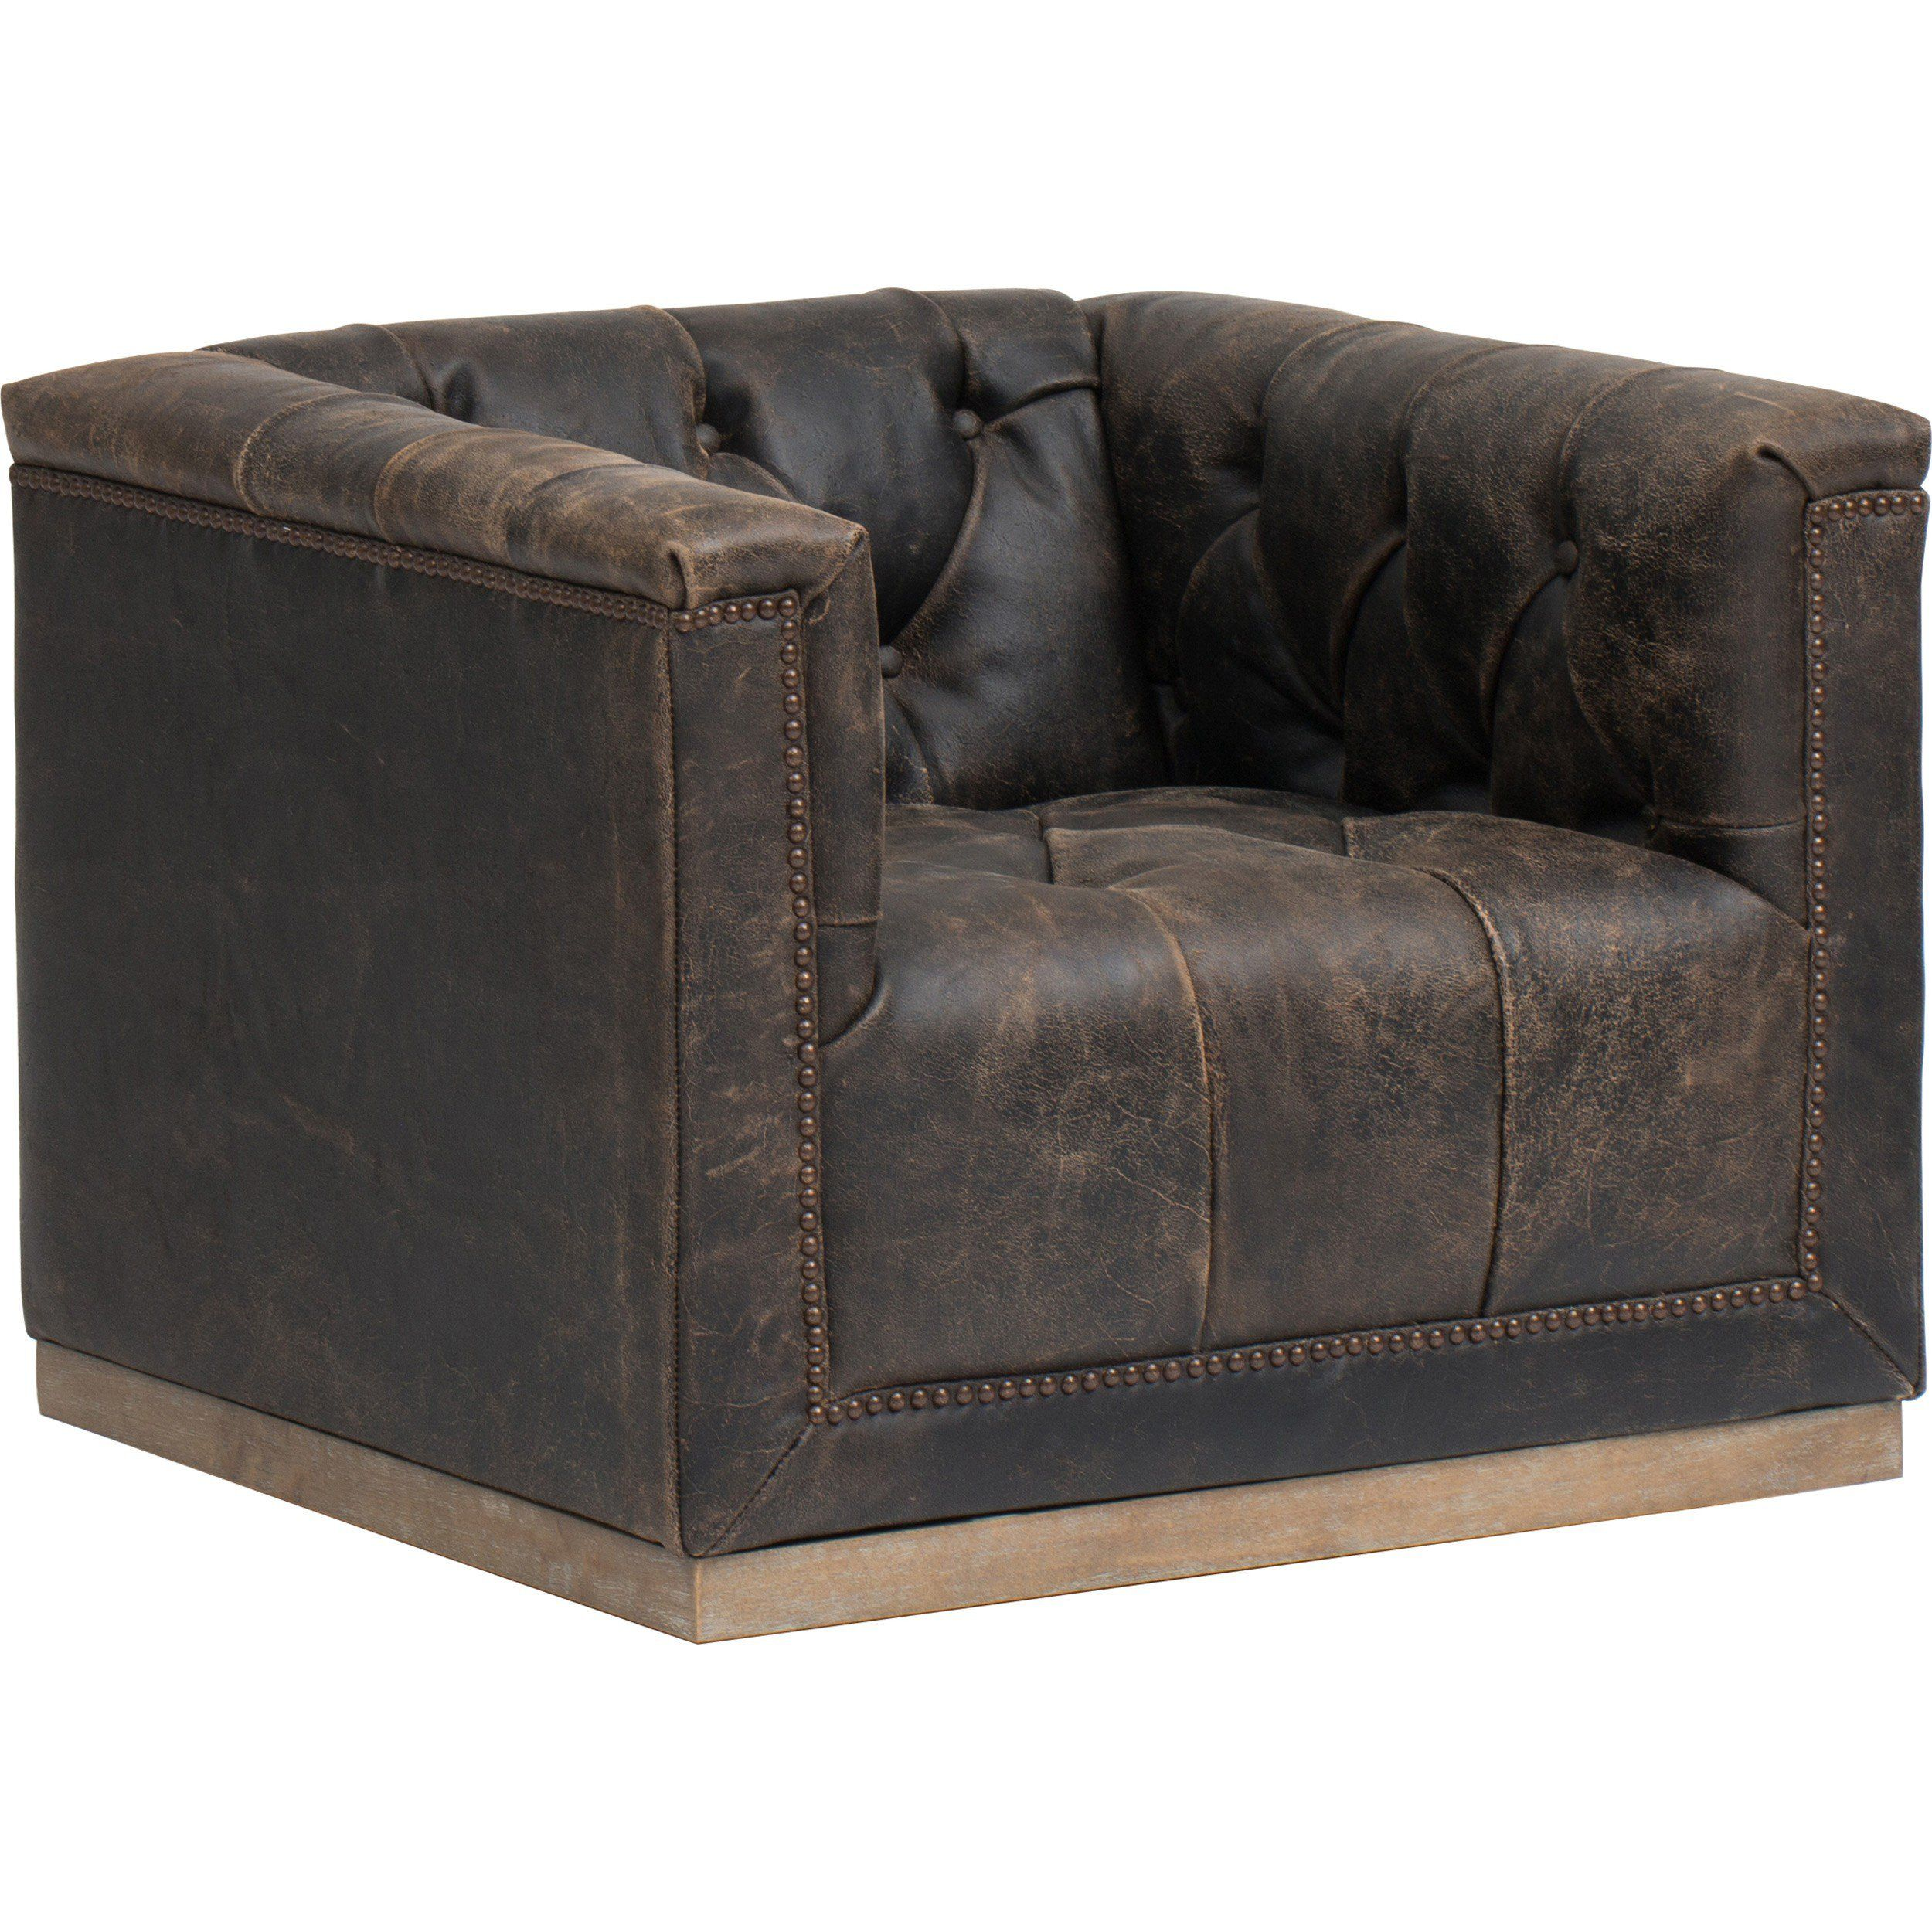 Leather Swivel Chairs For Living Room Maxx Leather Swivel Chair Destroyed Black Swivel Chair Leather